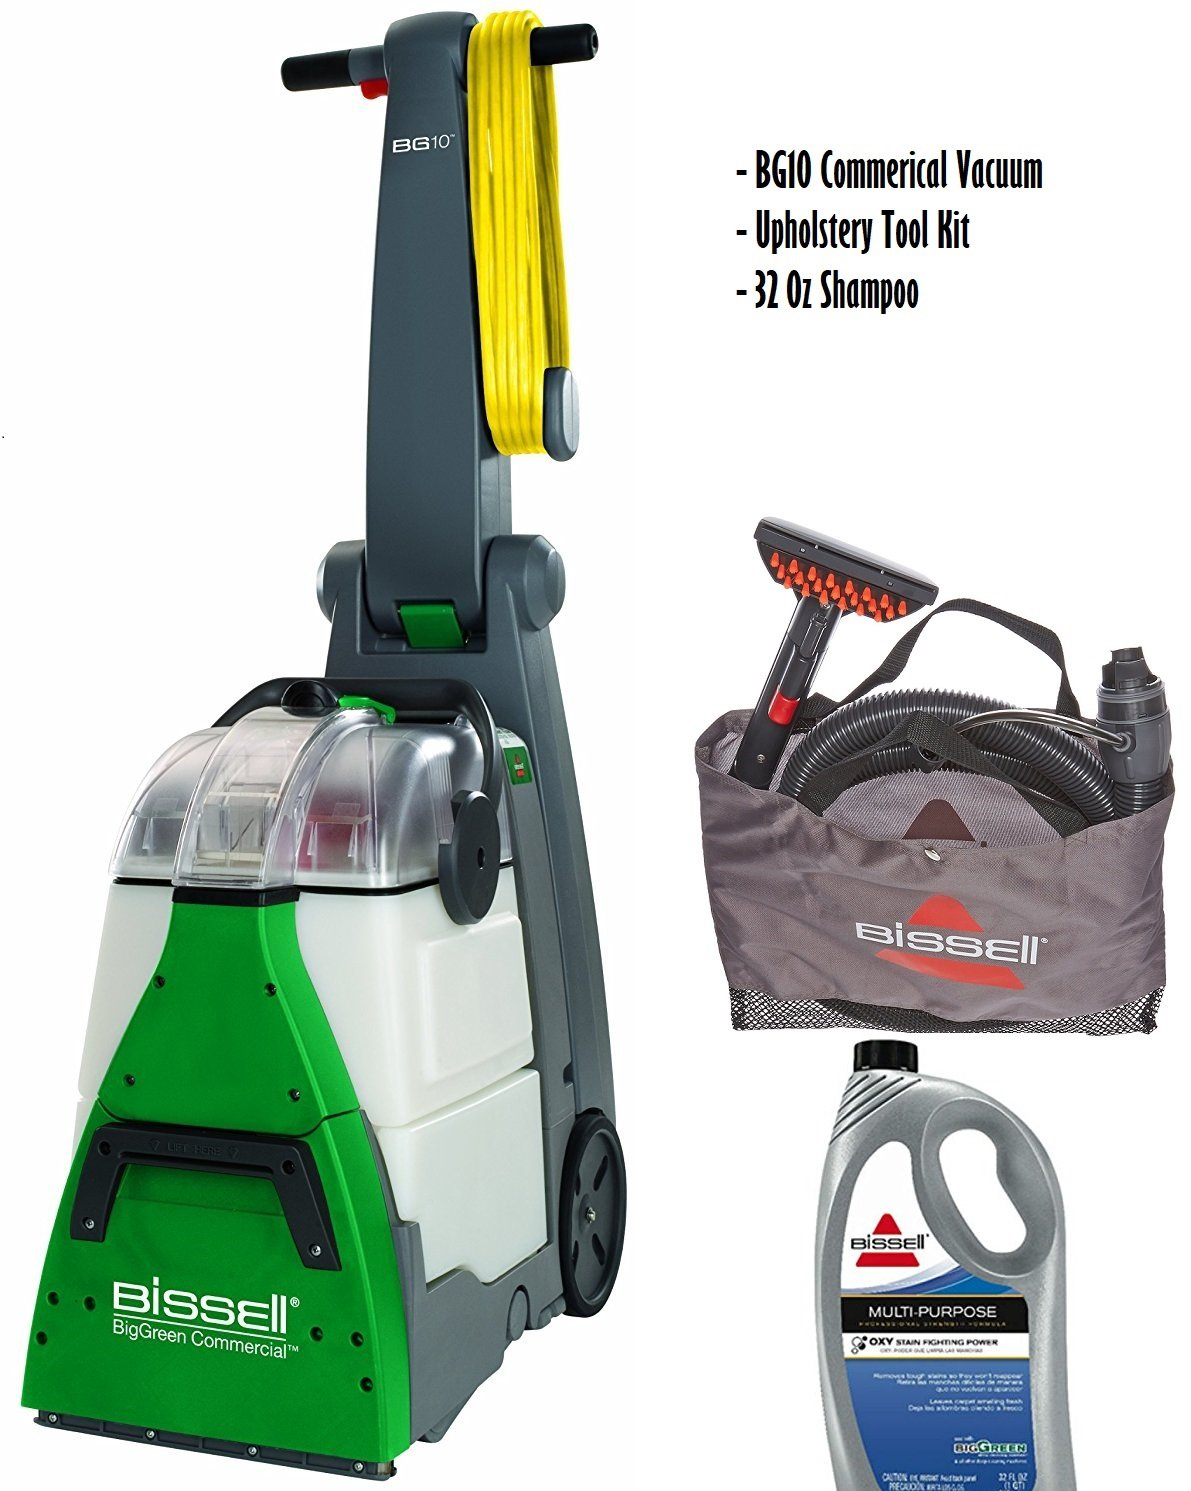 Bissell BigGreen Commercial BG10 Deep Cleaning 2 Motor Extracter Machine w/ Upholstery Tool, and 32 OZ Shampoo Bundle